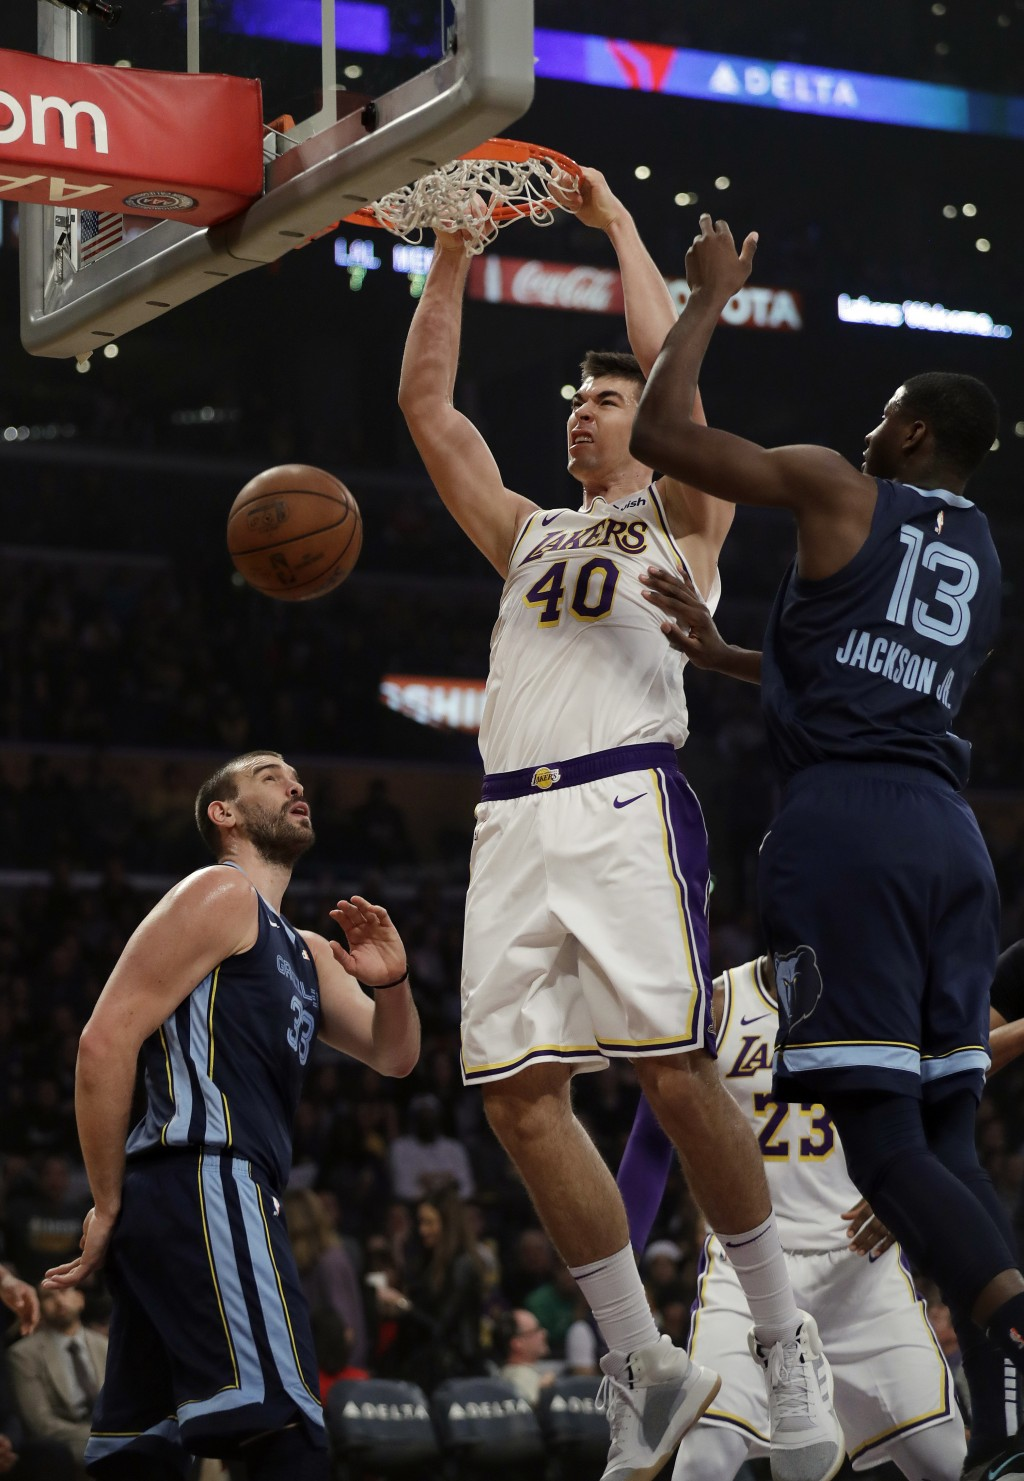 Los Angeles Lakers' Ivica Zubac (40) dunks between Memphis Grizzlies' Marc Gasol, left, and Jaren Jackson Jr. (13) during the first half of an NBA bas...